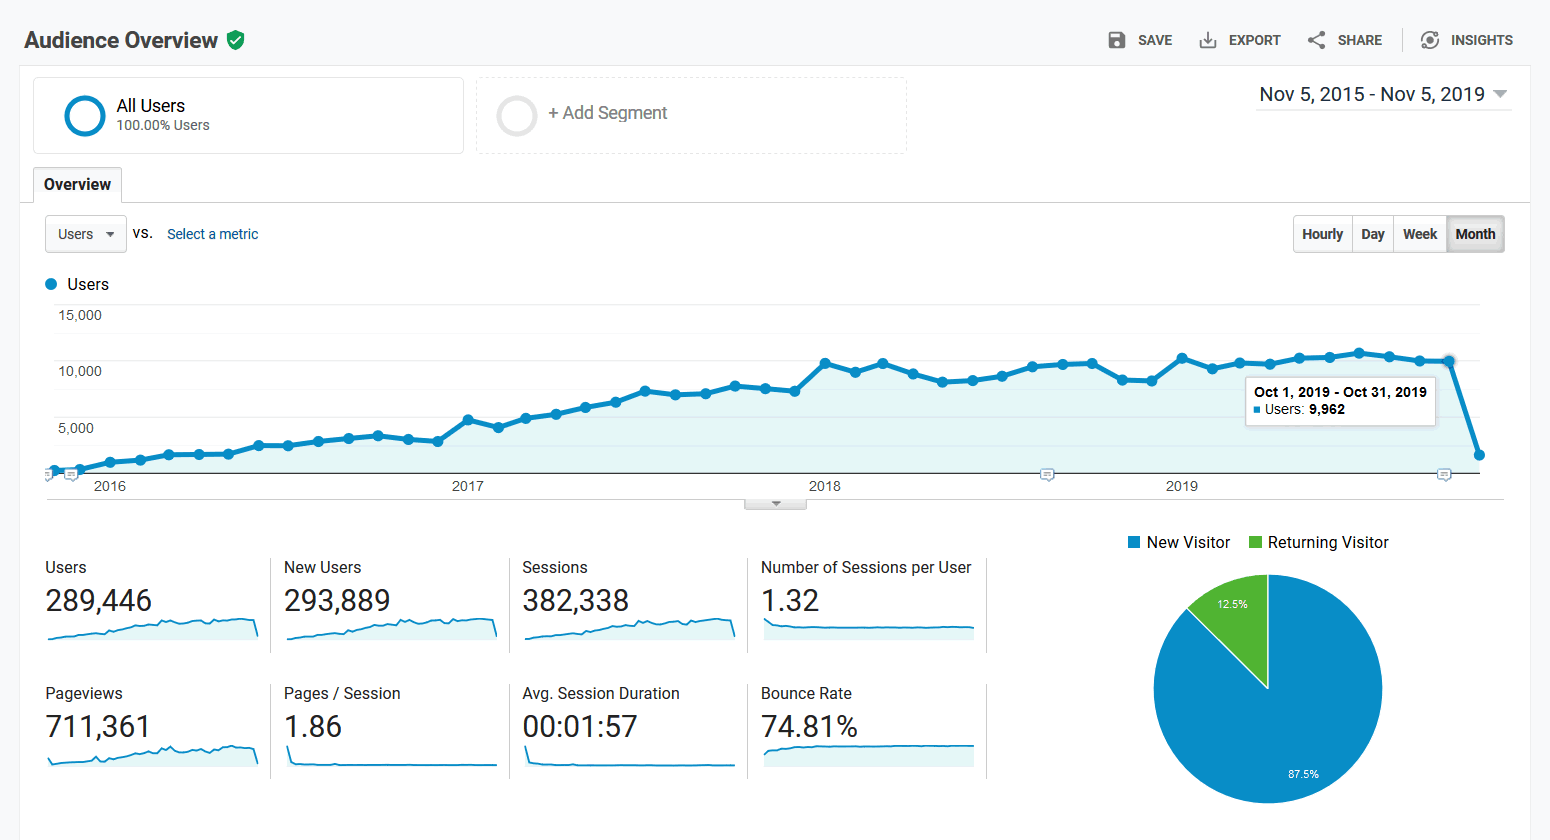 Google Analytics - Audience Overview - 2015-11-05 through 2019-11-05